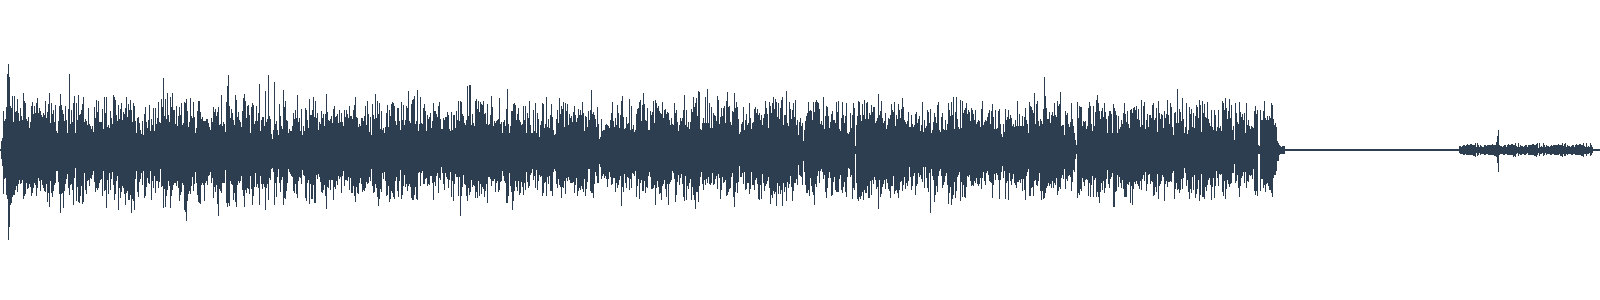 Lisabon citybreak waveform